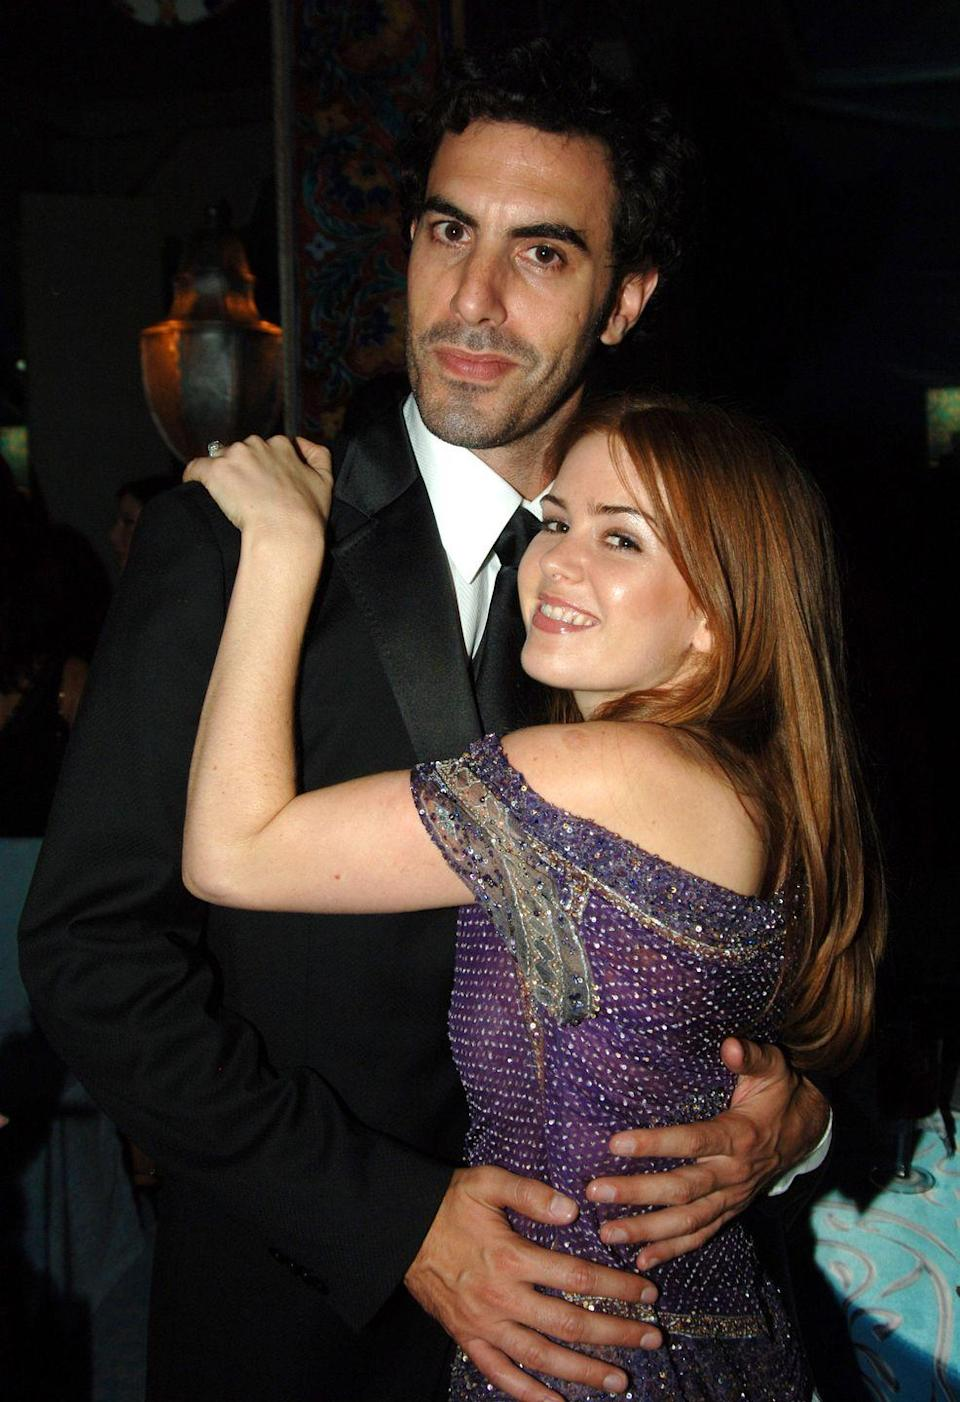 <p>Baron Cohen and Fisher met in 2002 and married in 2010 after Fisher converted to Judaism. They have three children together. </p>